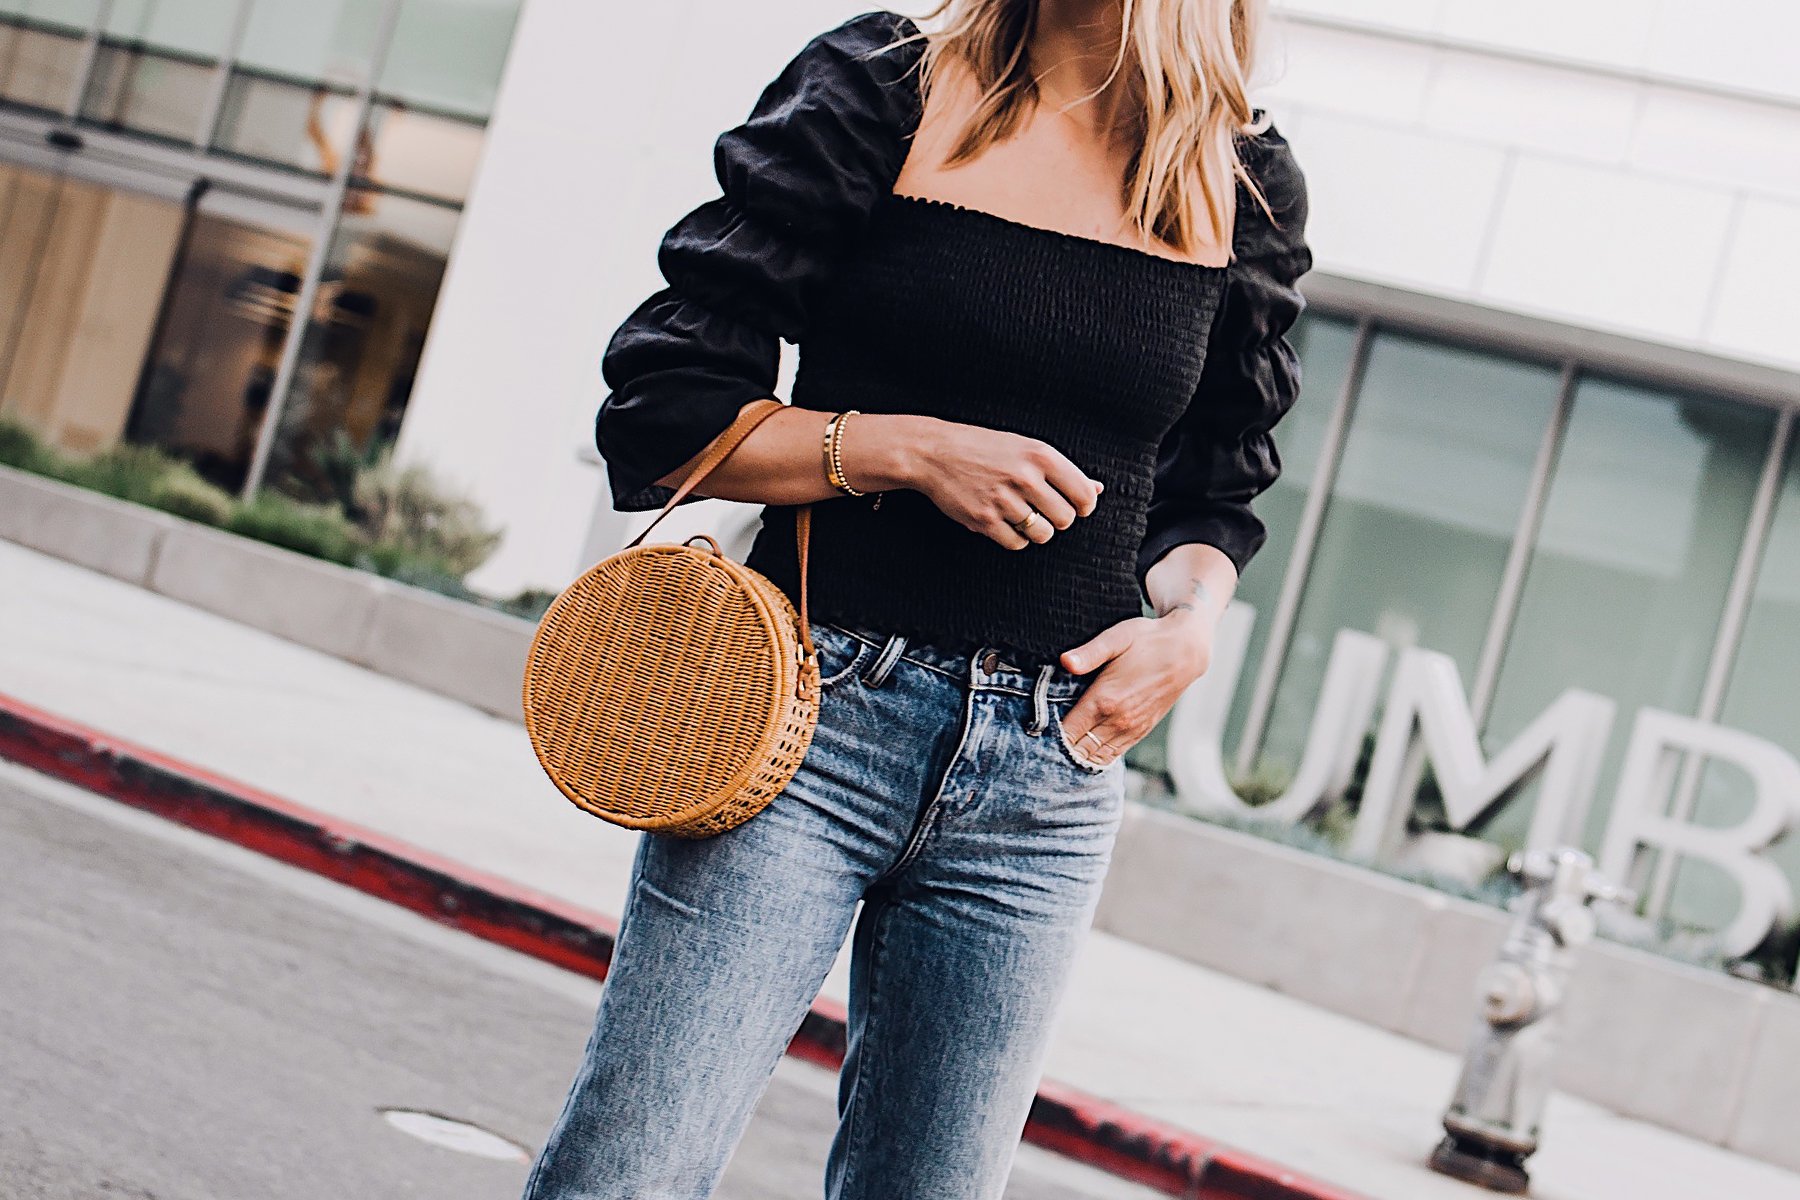 Blonde Woman Wearing Reformation Gala Top Black Ripped Jeans Cane Circle Straw Handbag Fashion Jackson San Diego Fashion Blogger Street Style